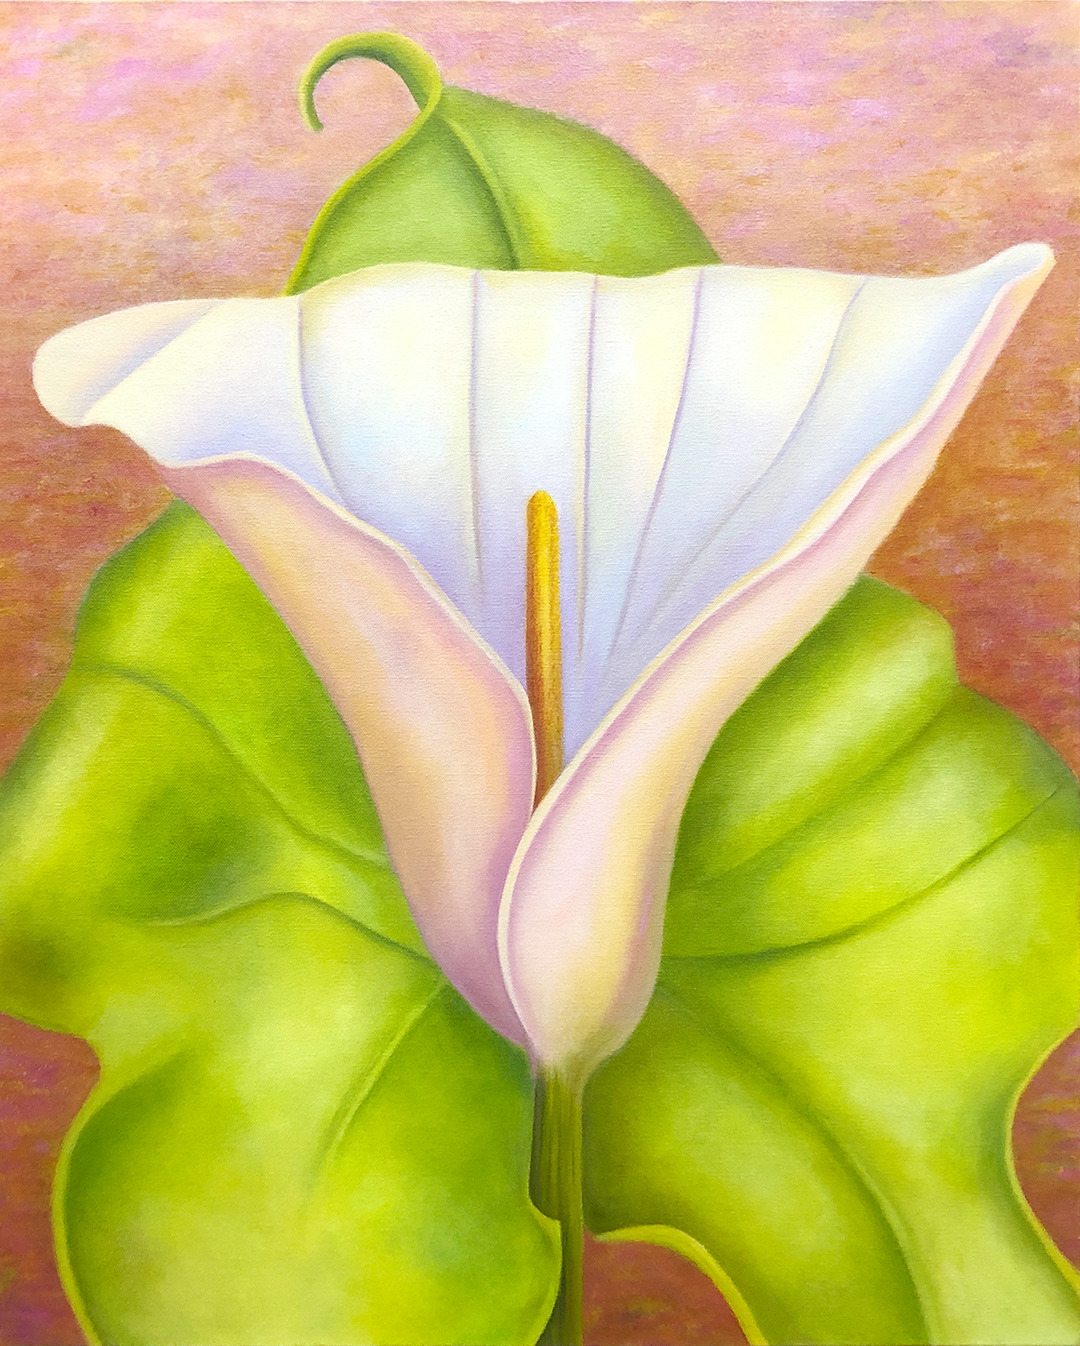 210126 ahern dance with me calla lily img 1564 qtvywy